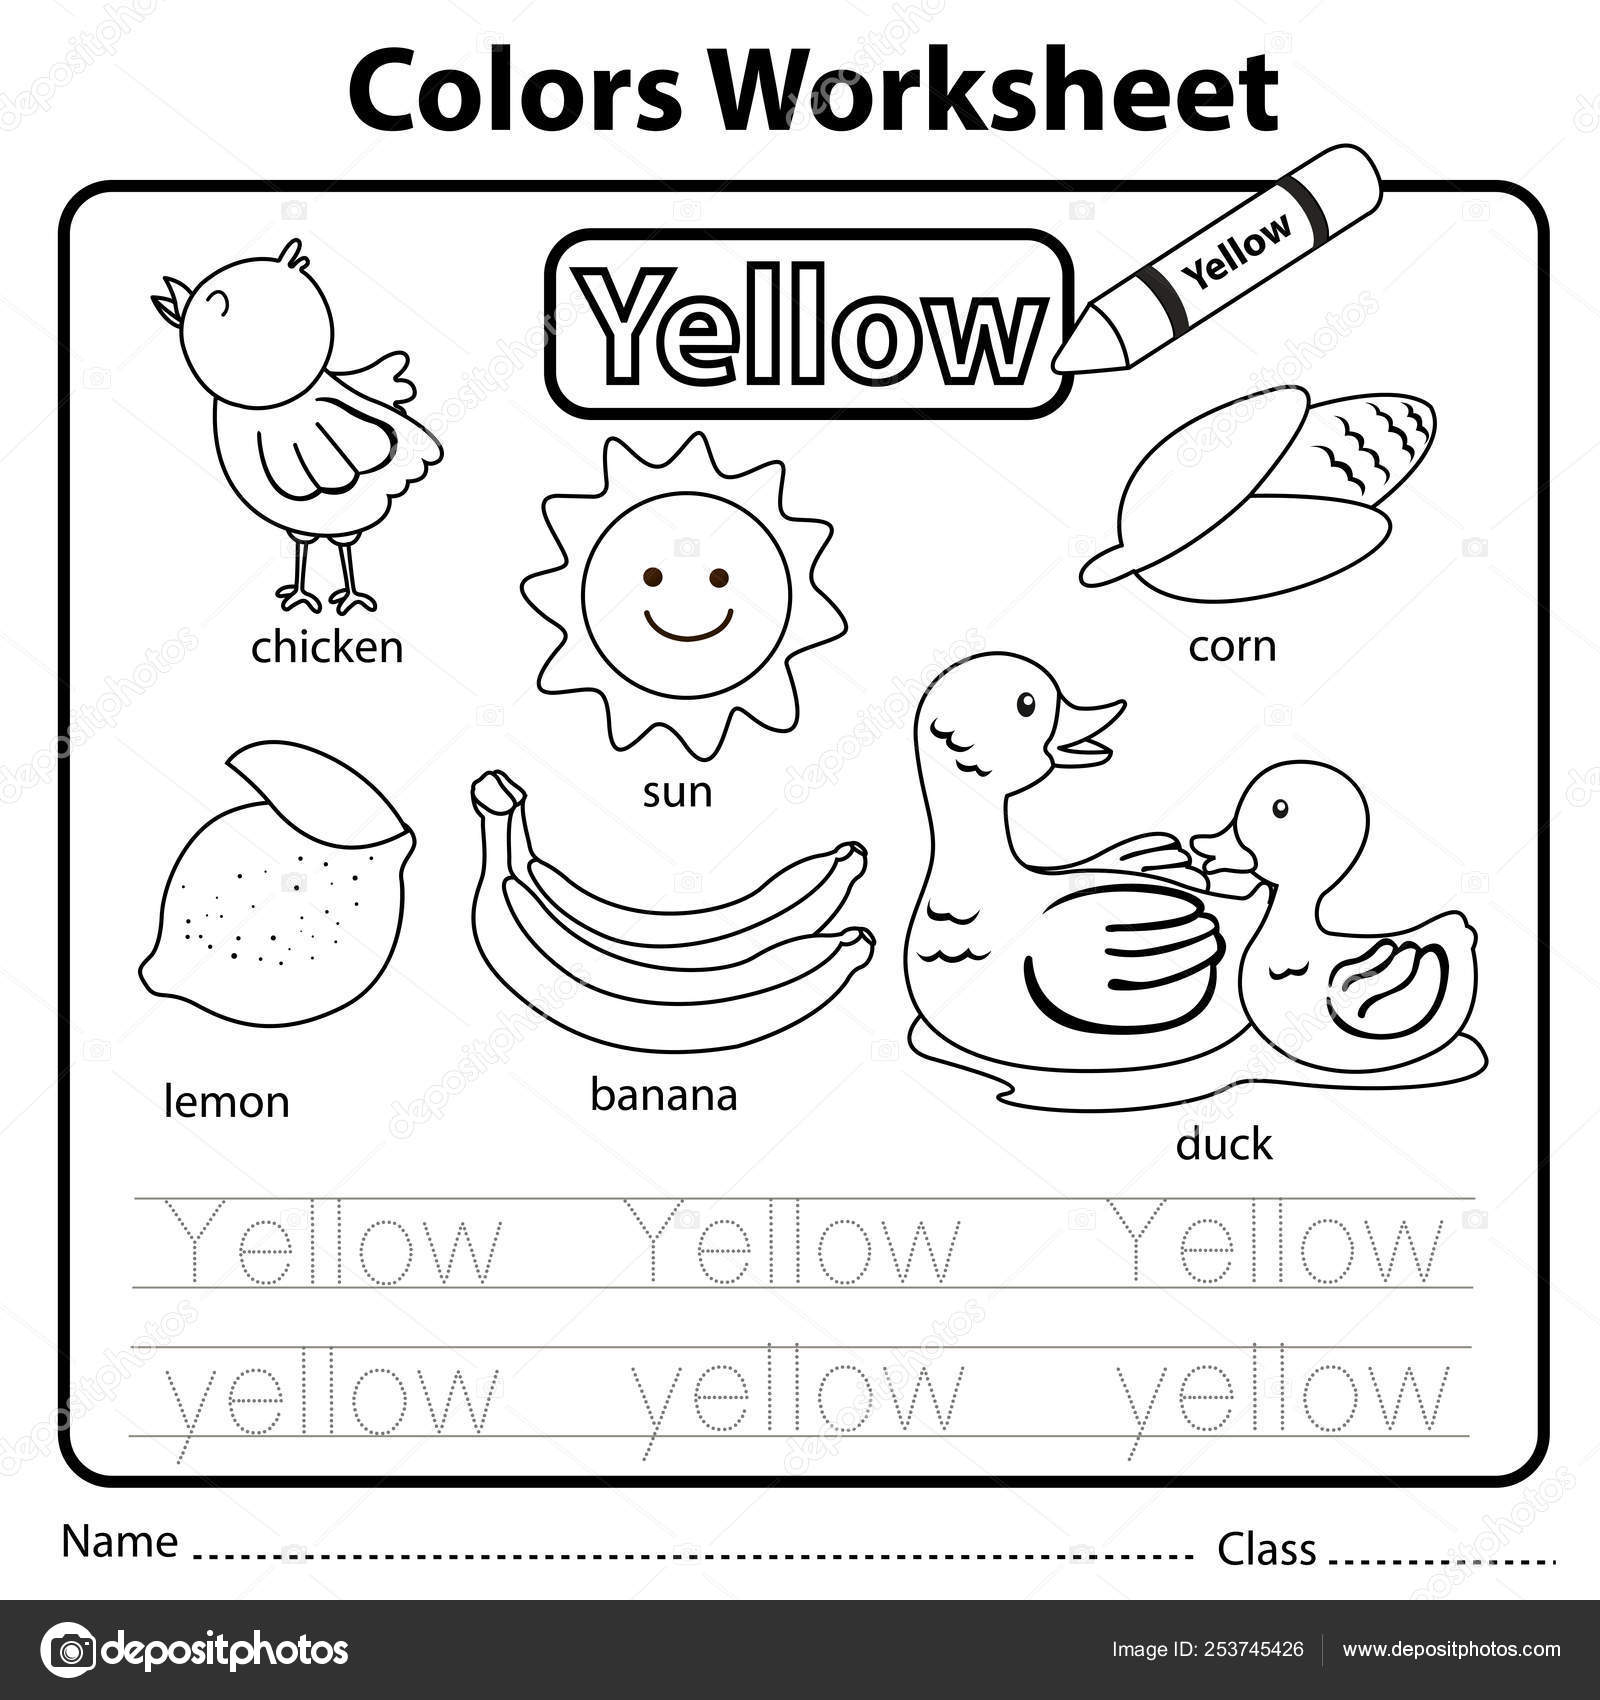 Illustrator Color Worksheet Yellow